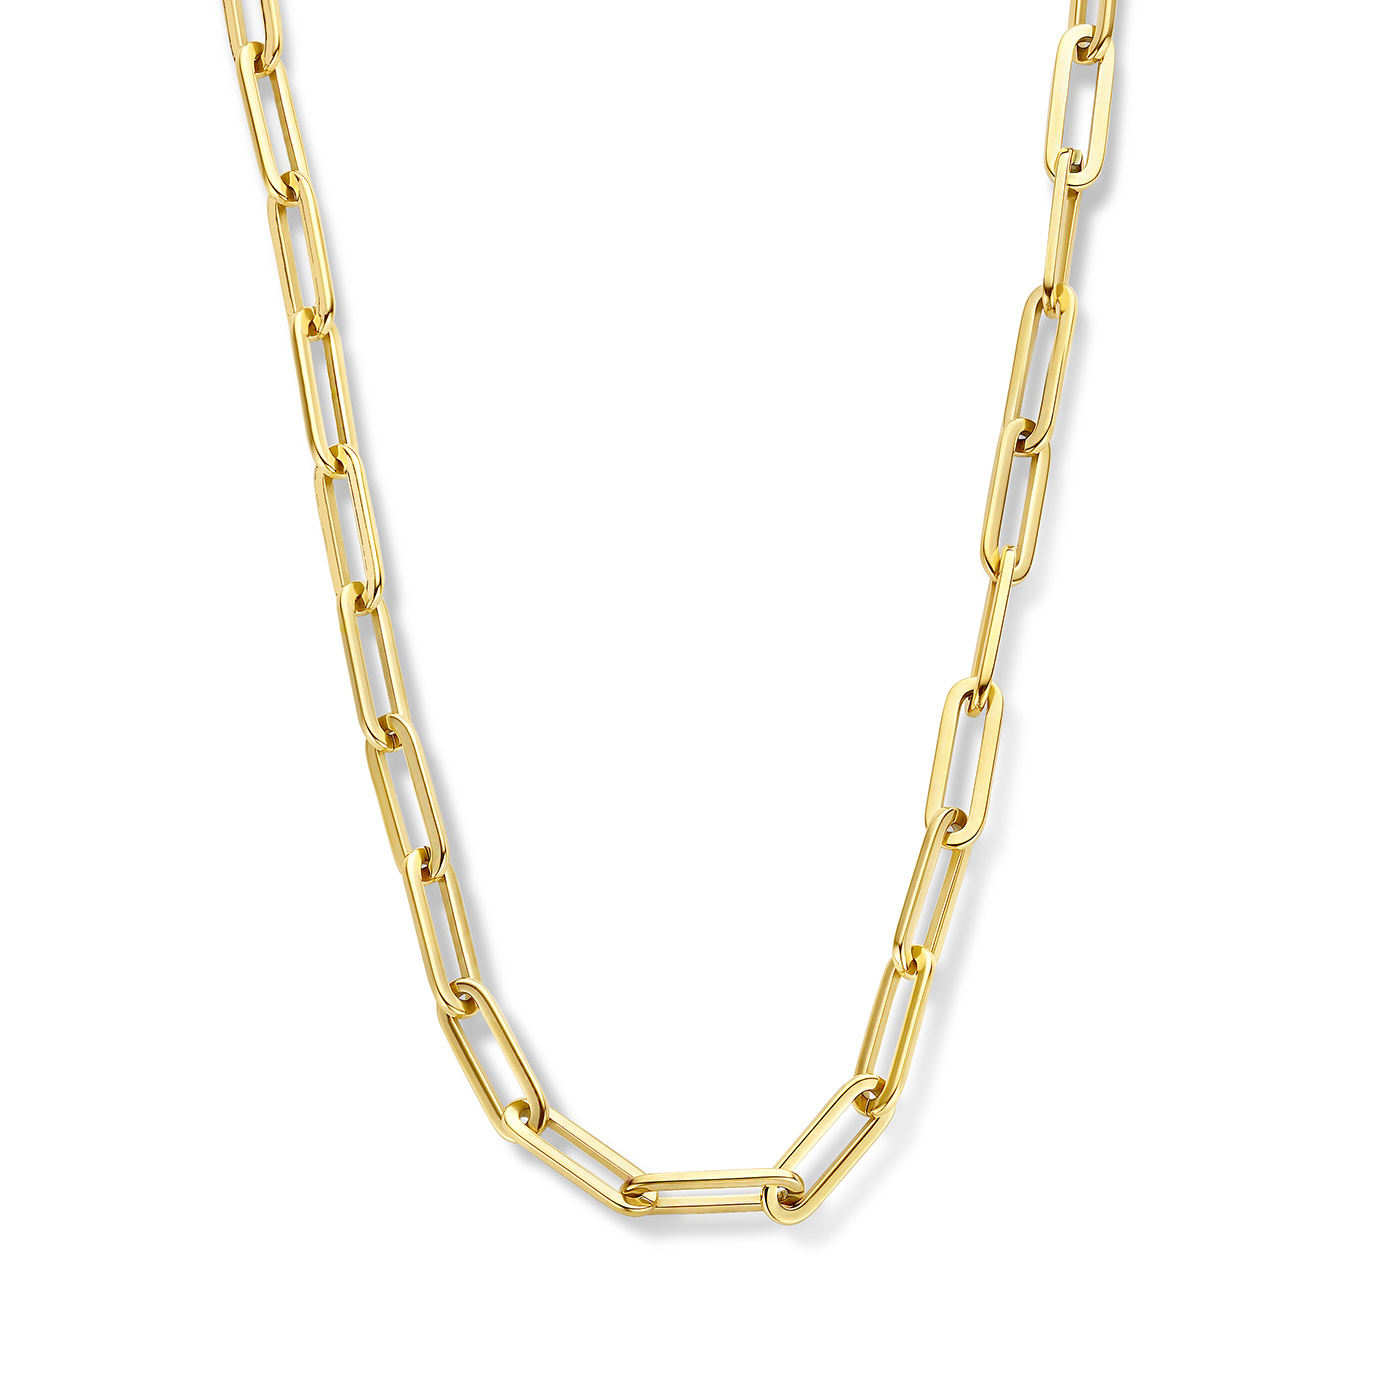 May Sparkle Forever Young Lily gold colored necklace